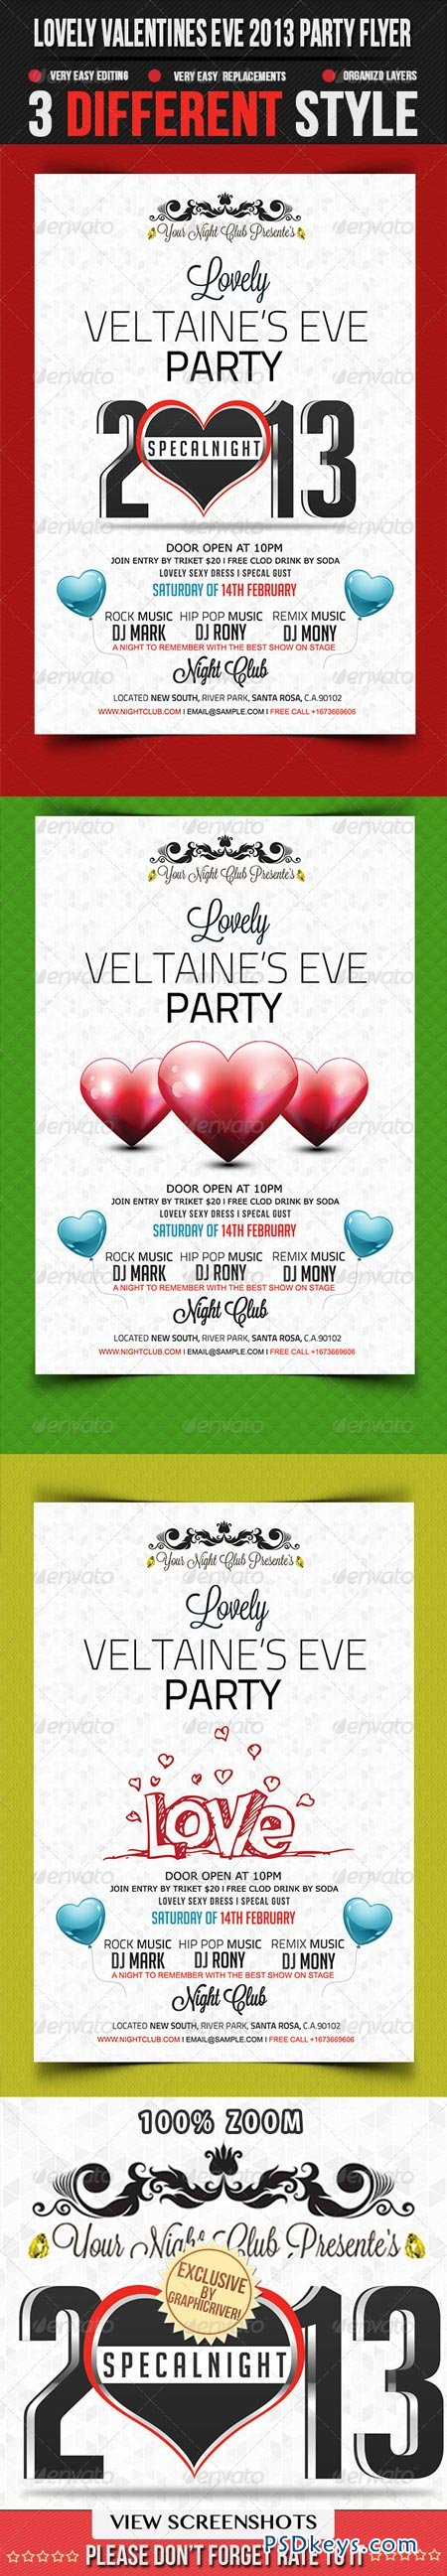 Lovely Valentines Eve 2013 Party Flyer Template 3786978